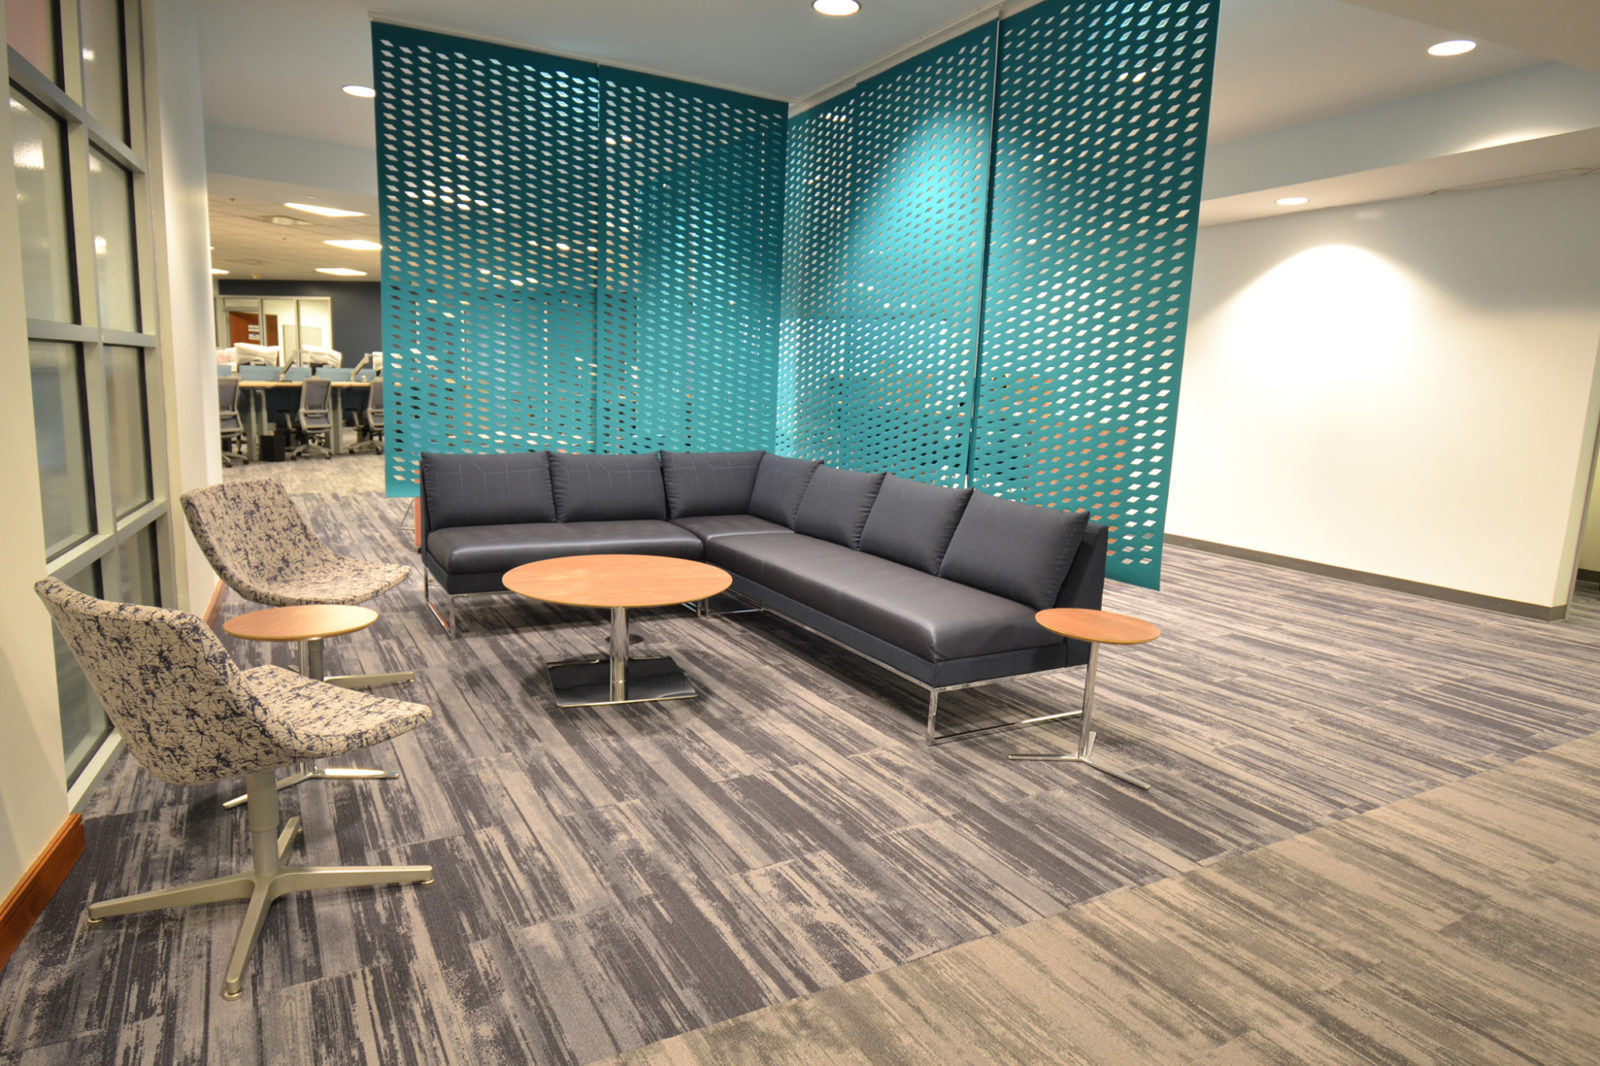 Prof. Services Firm Project Highlight: divider partition walls and lounge area